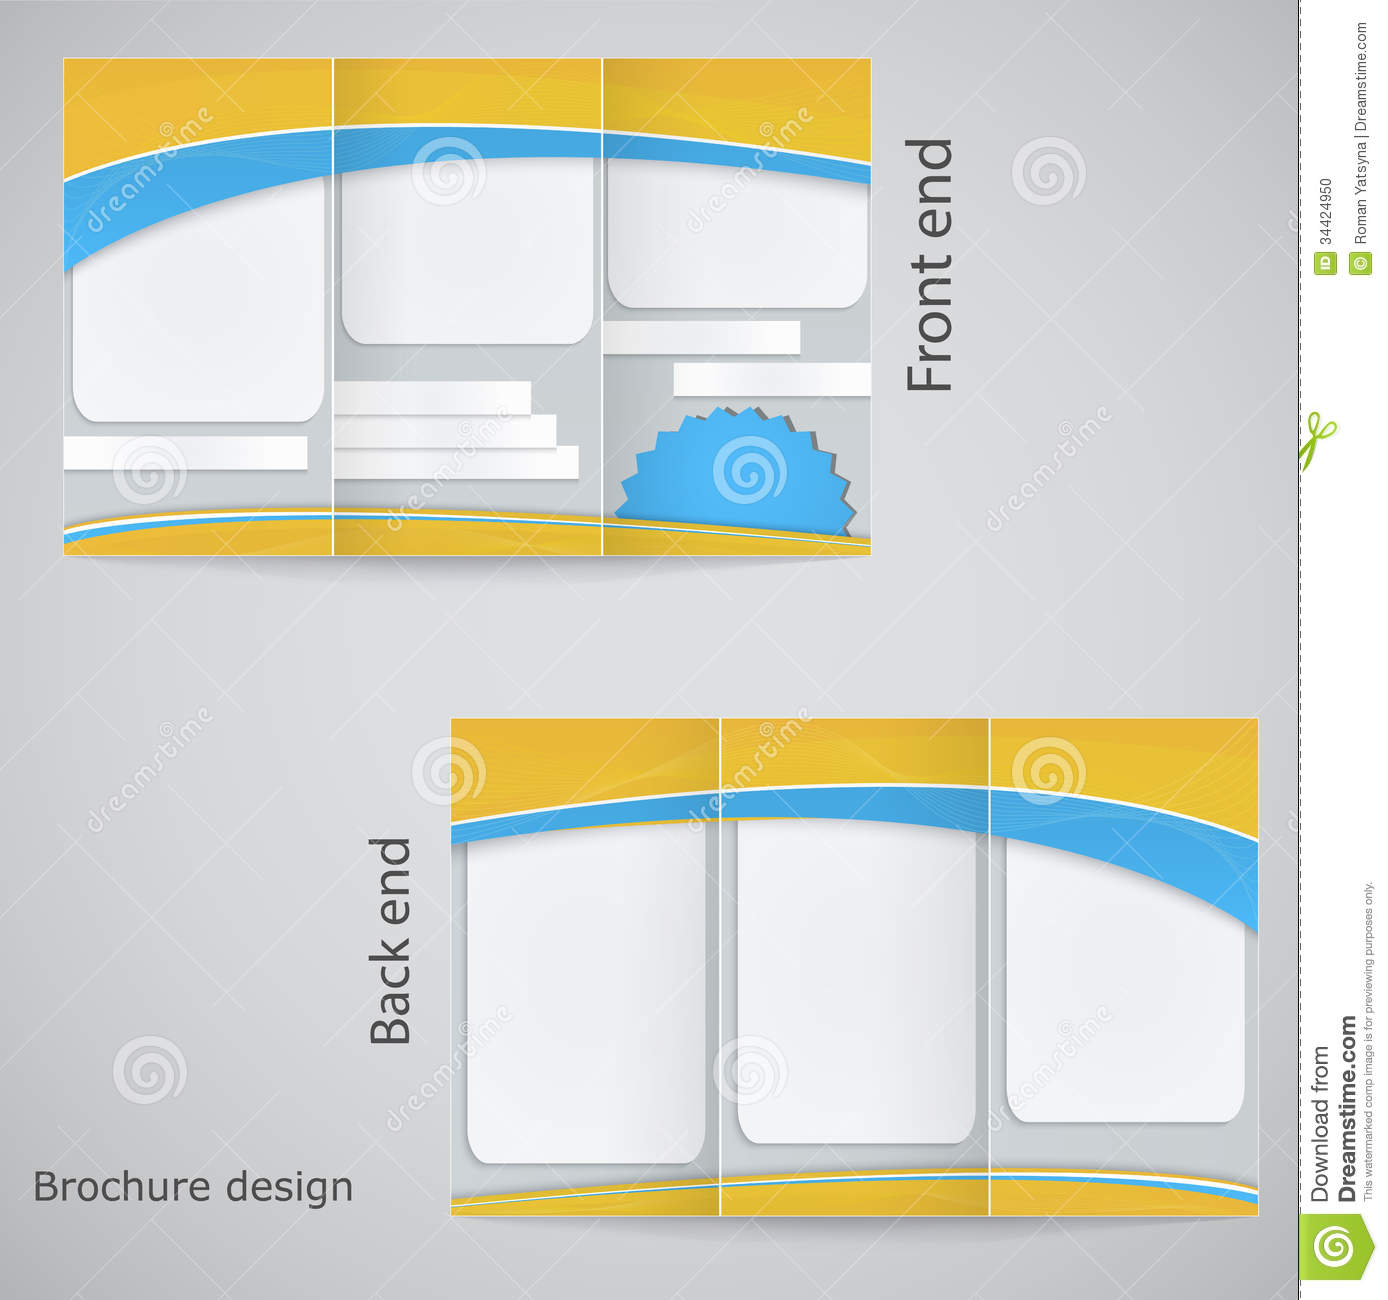 Tri fold brochure design stock vector image of branding for Free 3 fold brochure template